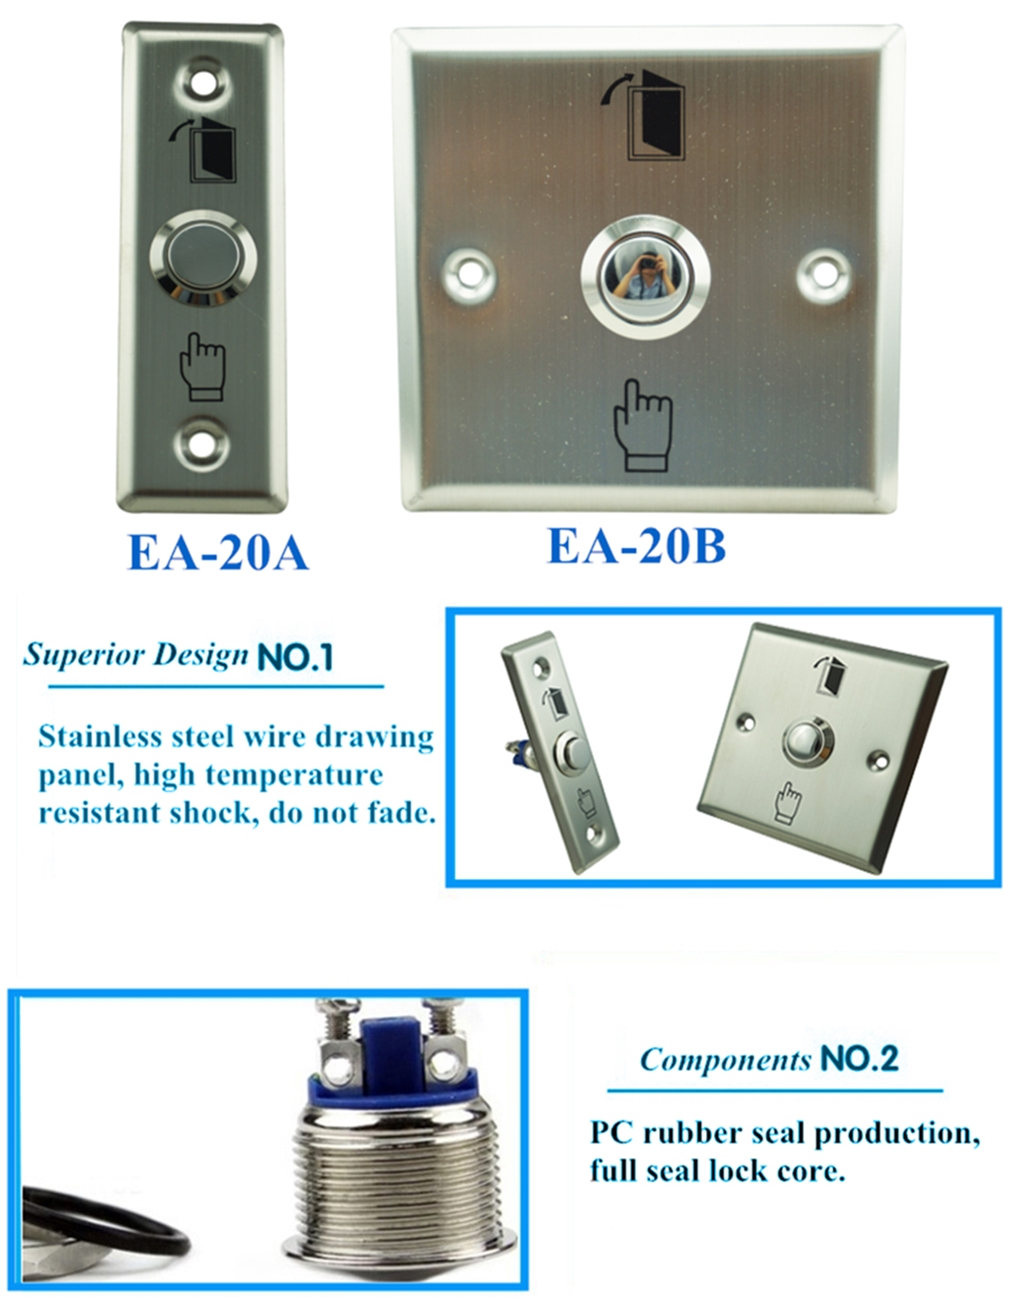 Stainless steel panel door release/push button